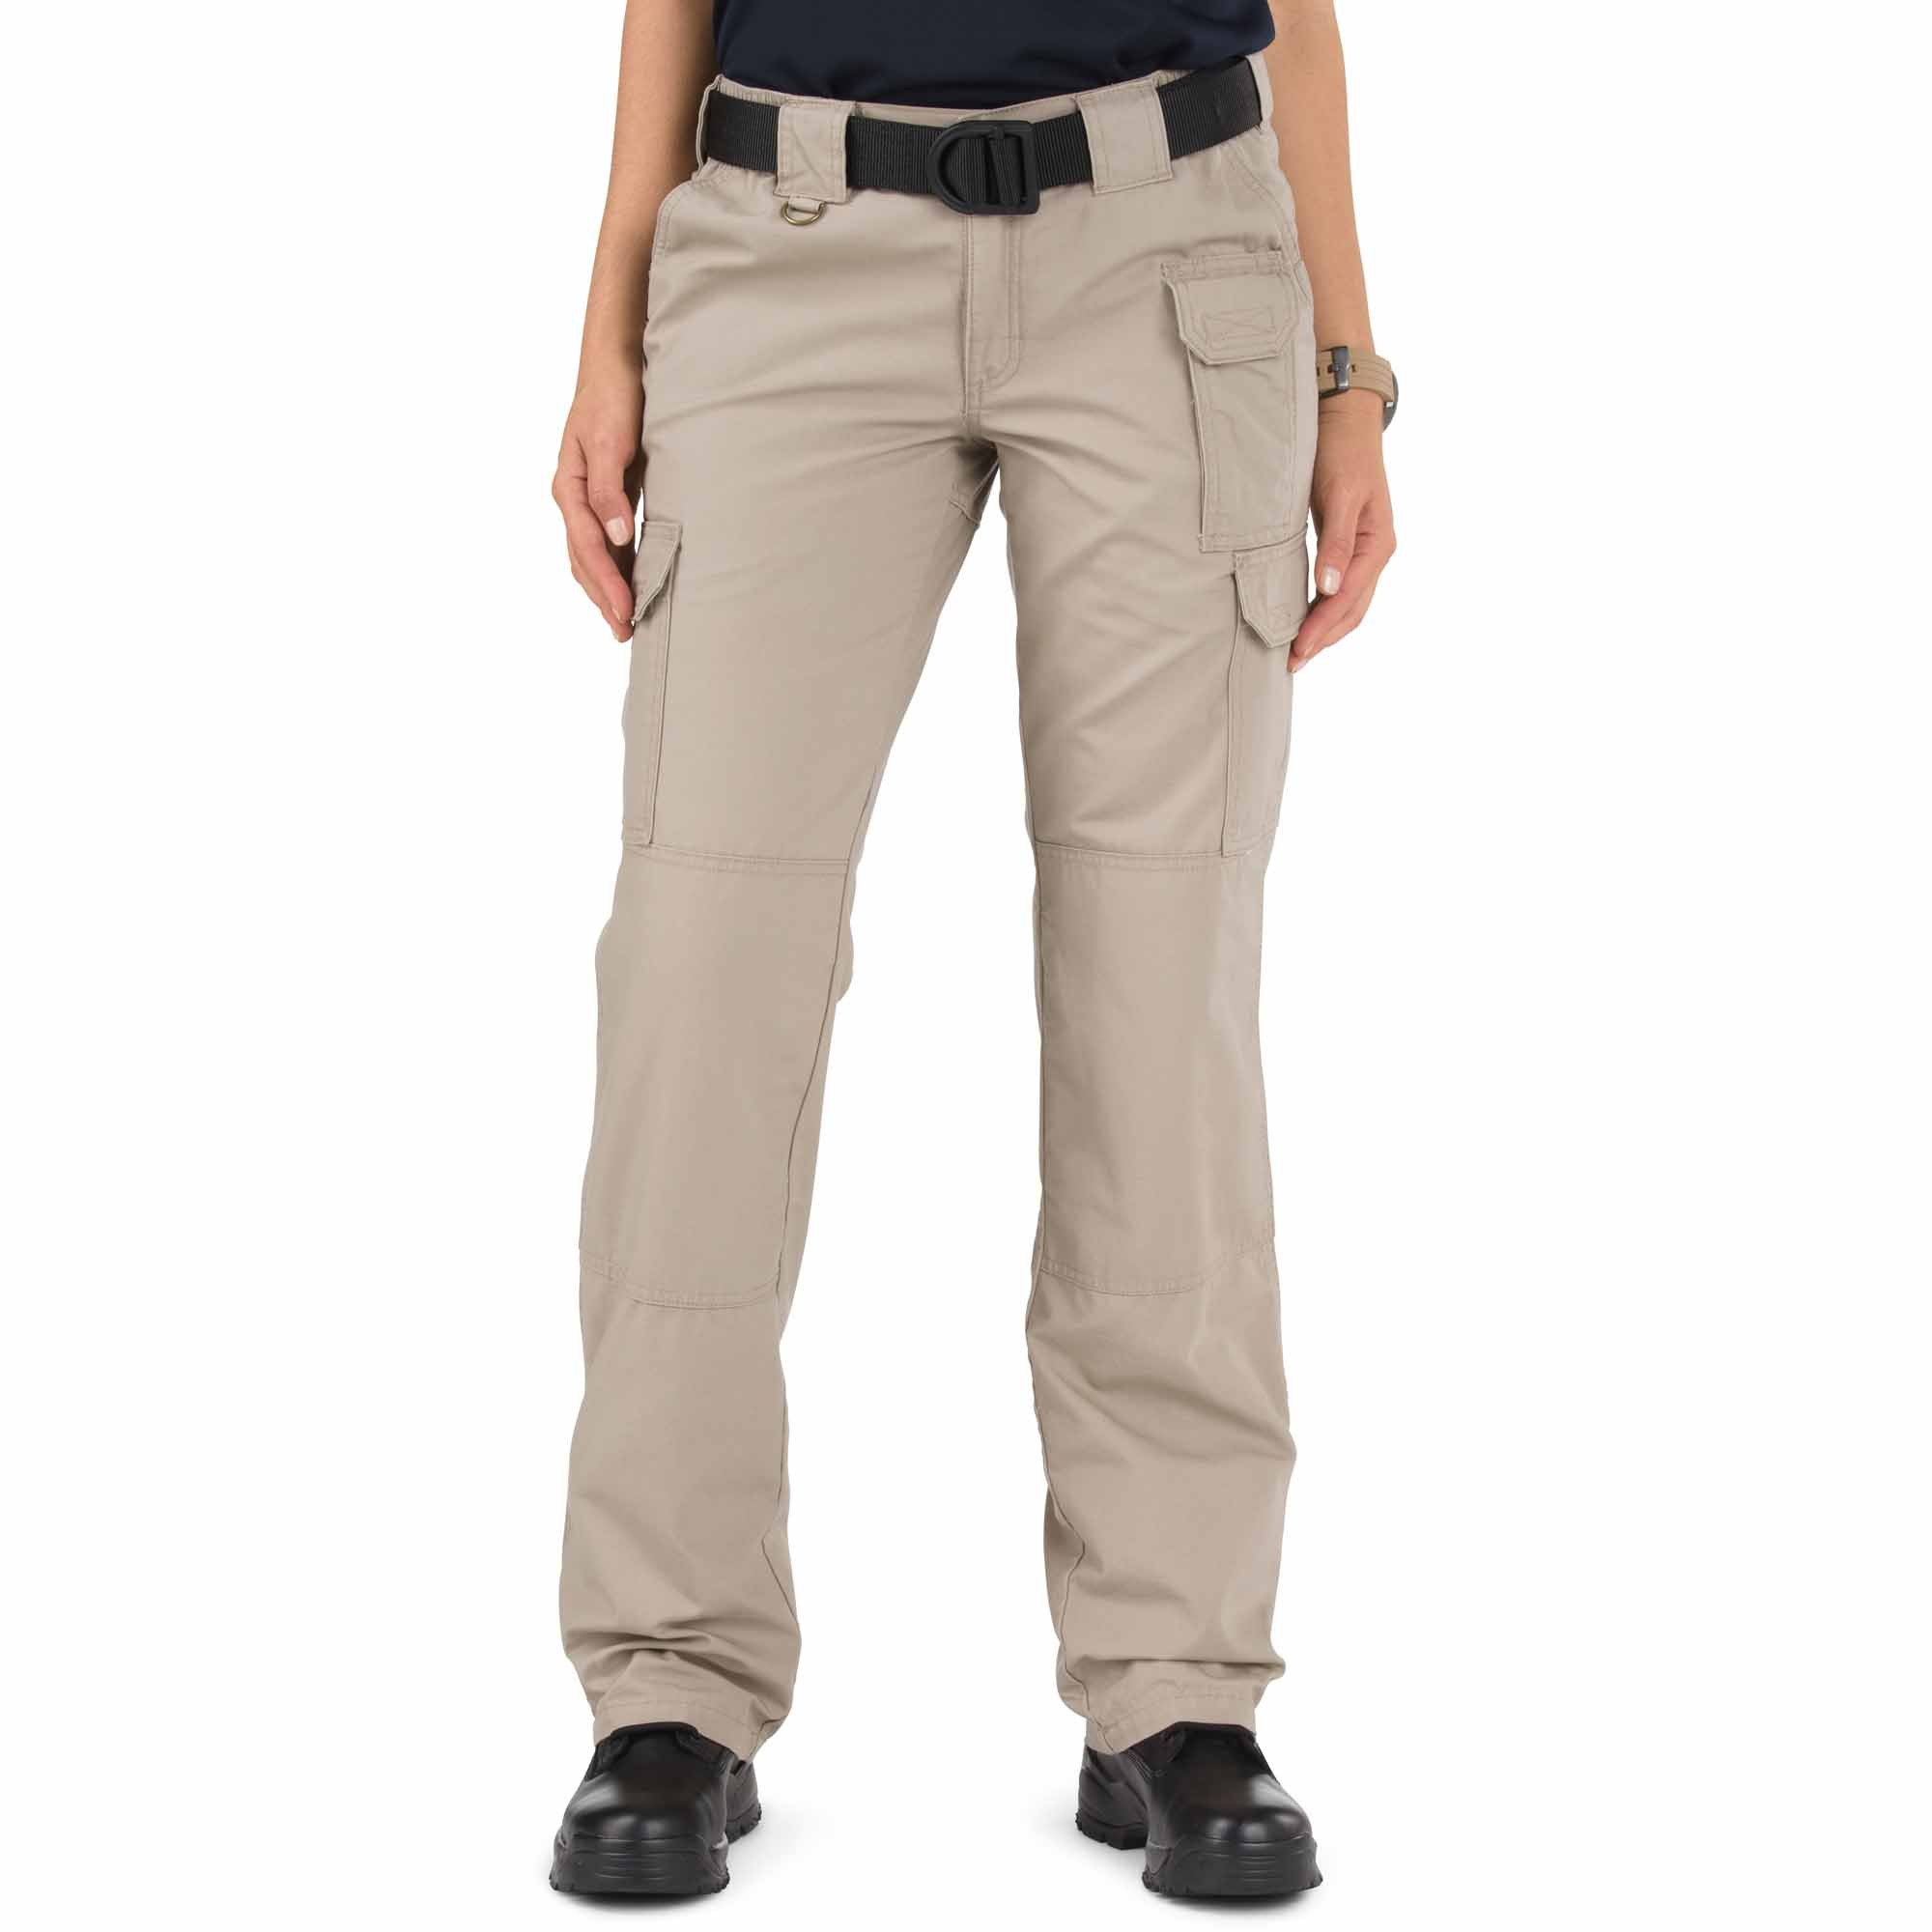 5.11 Womens New Fit Tactical Pant 64358